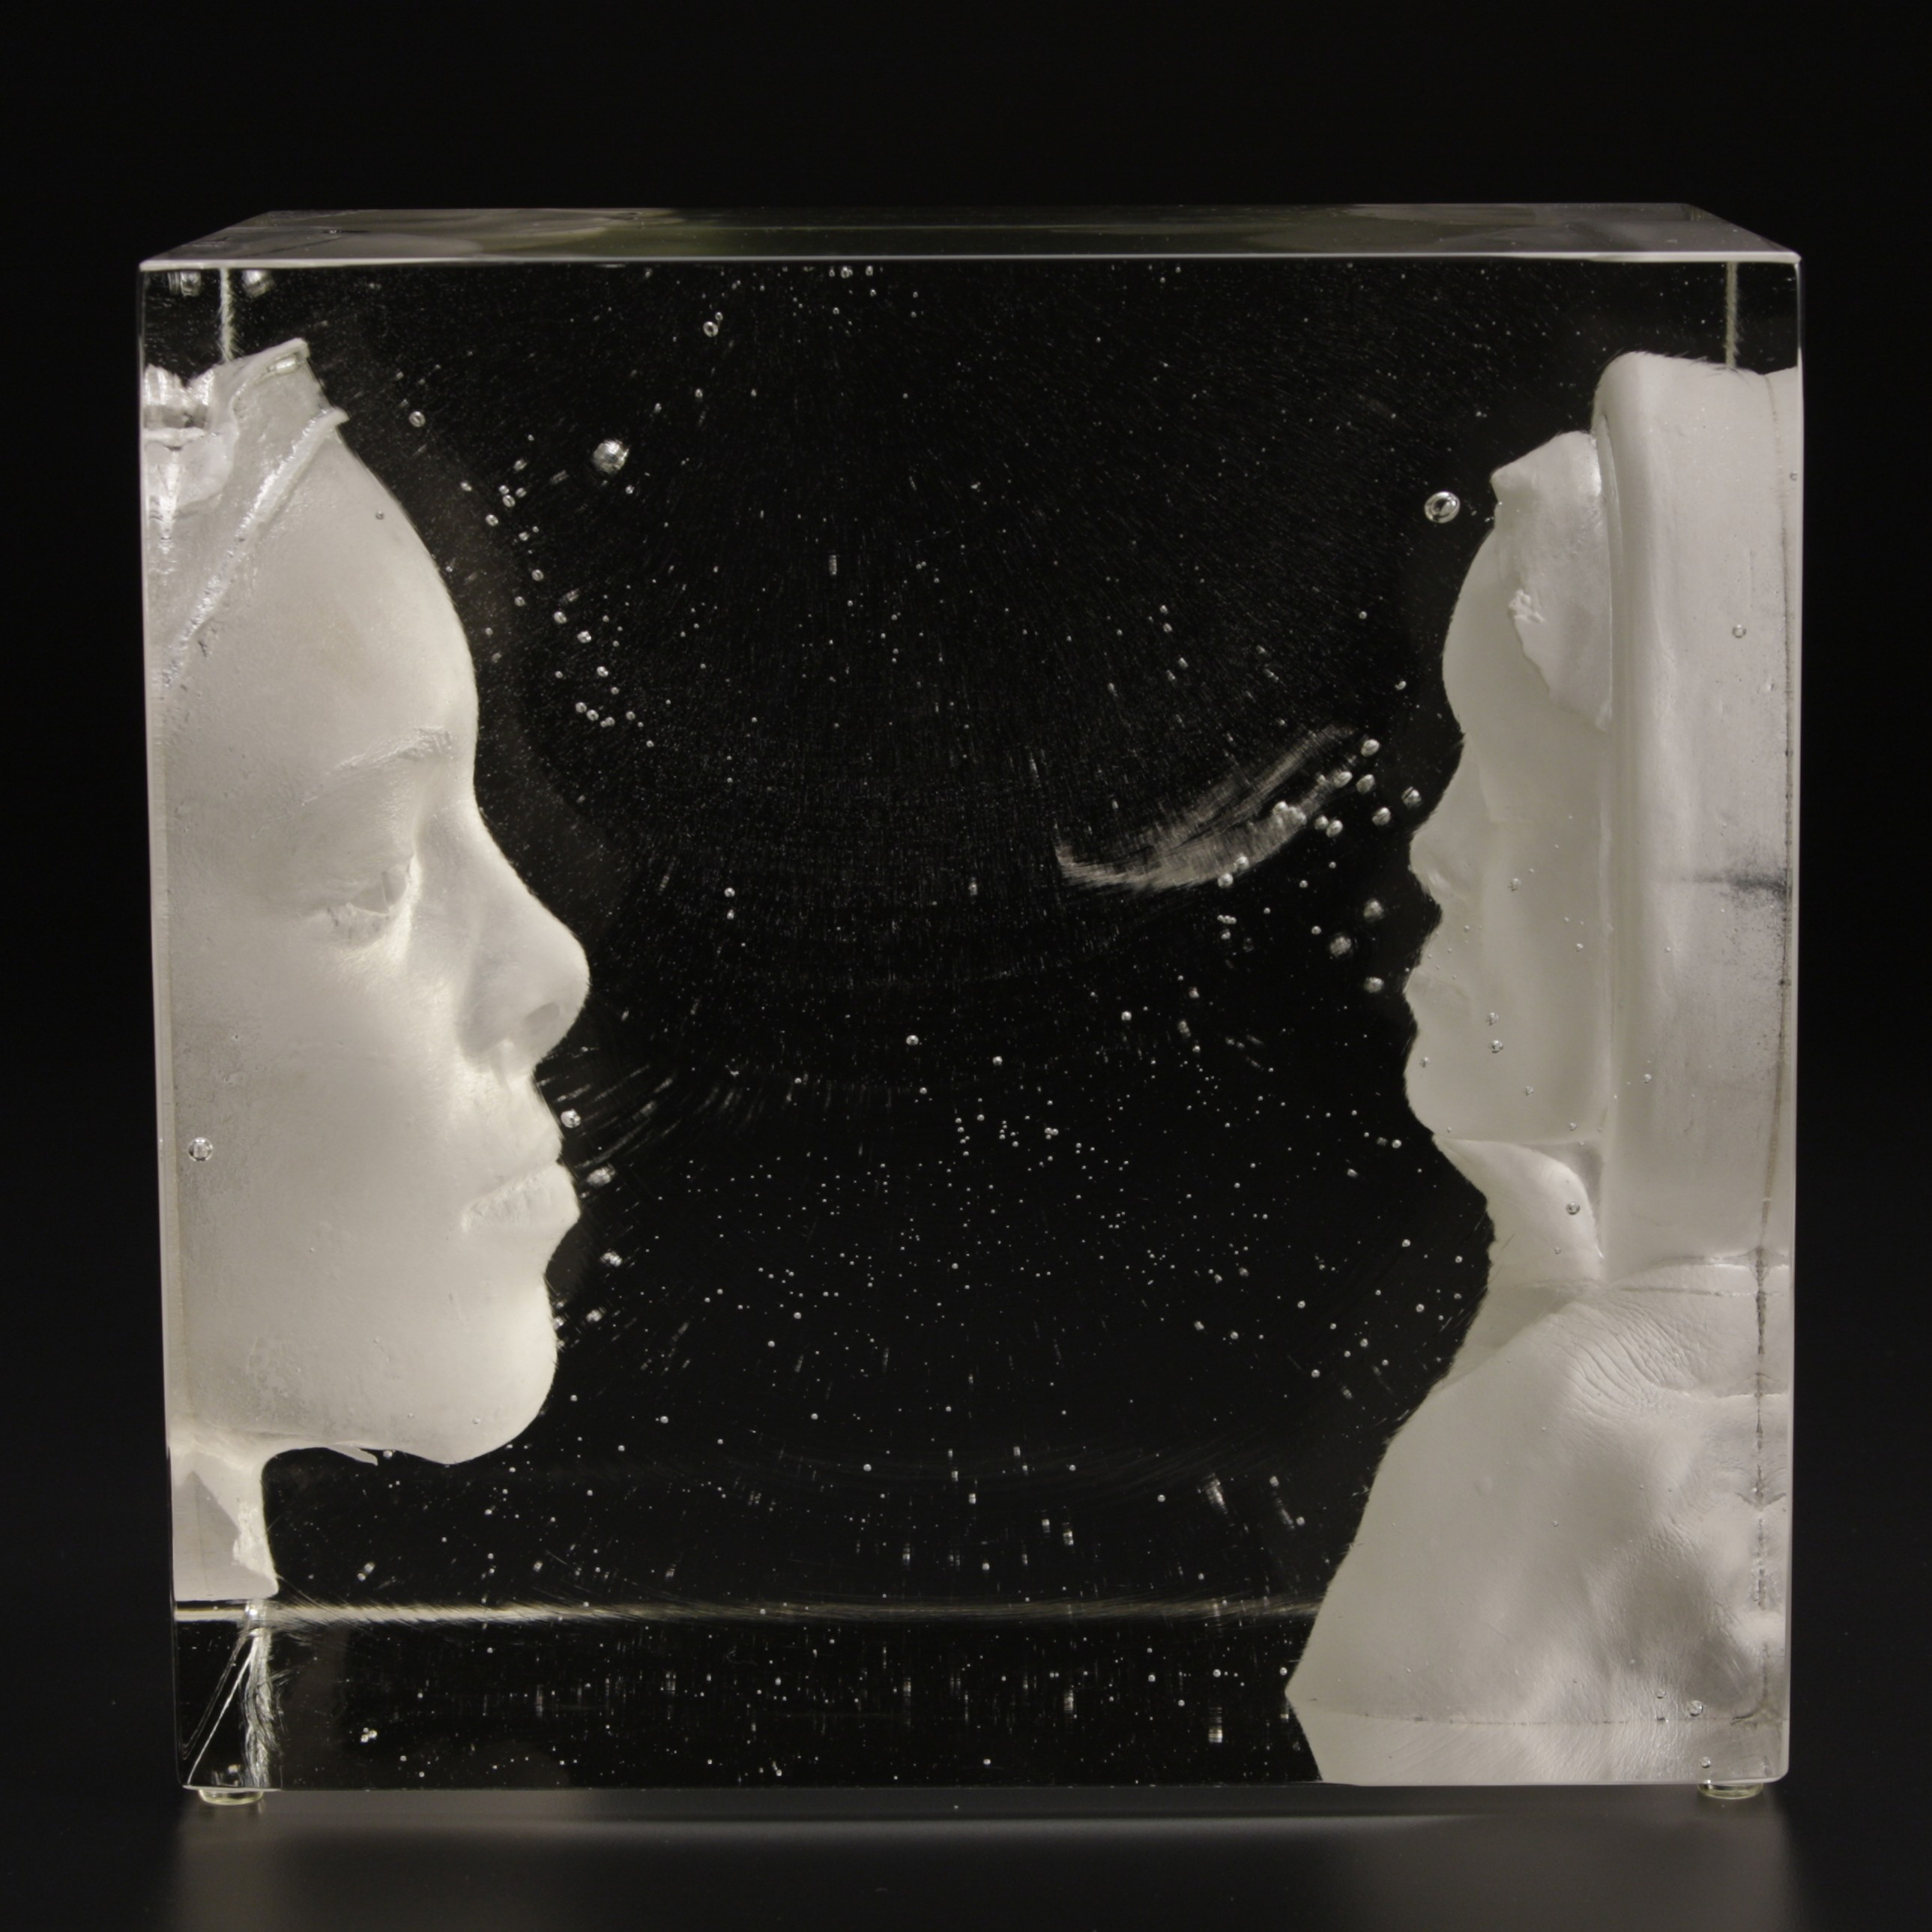 Cast glass block with face looking in the mirror.